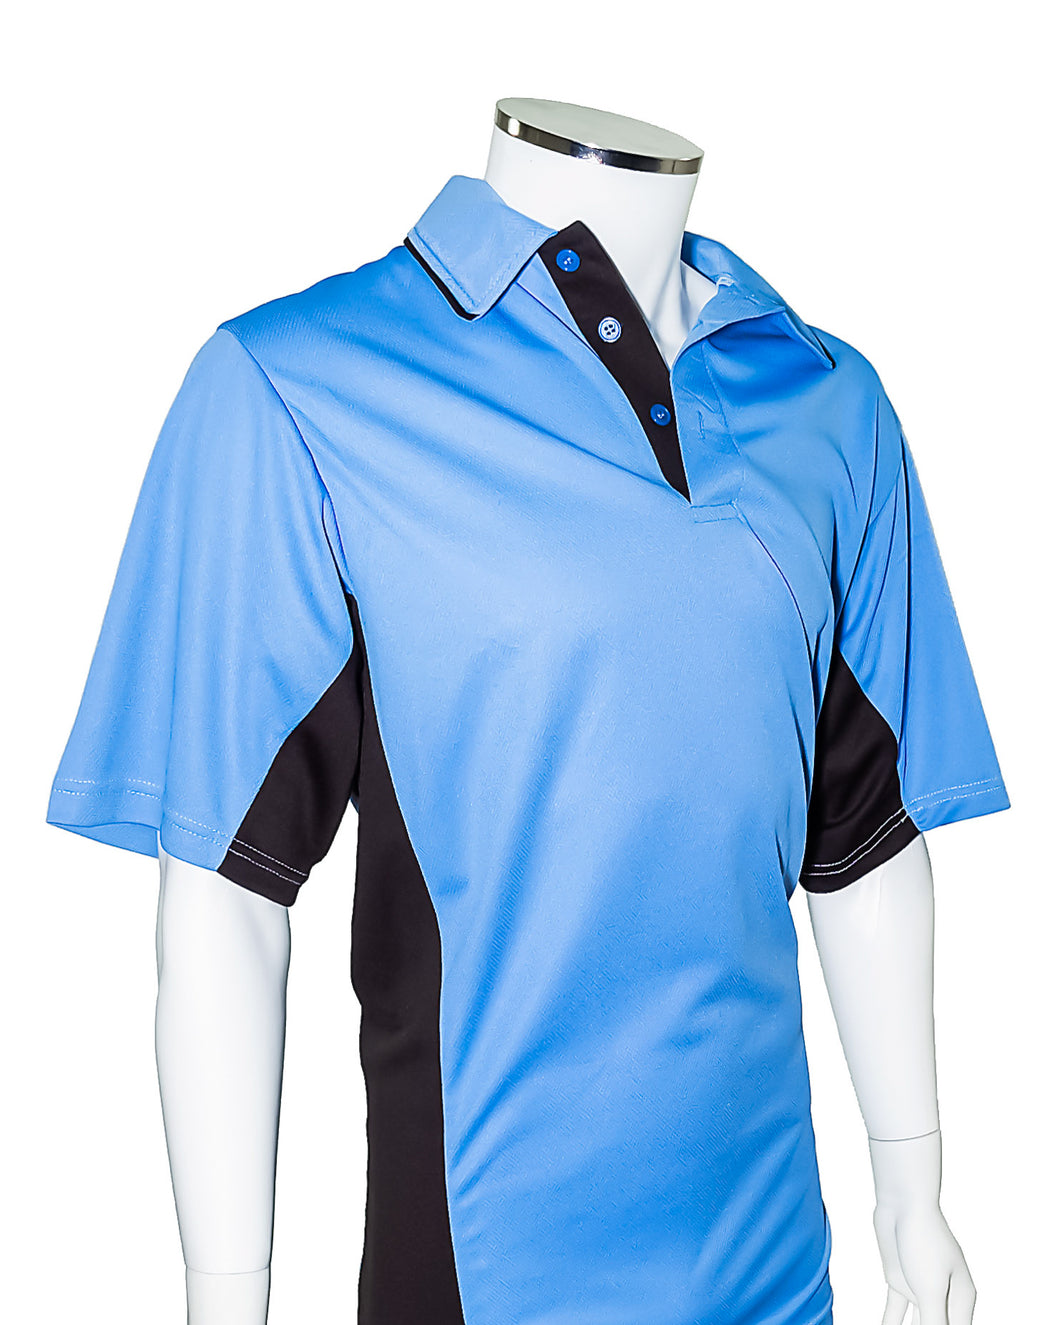 4e25bcb1a3 ... Current Major League Replica Umpire Shirt - SKY BLUE with BLACK -  Officials Depot